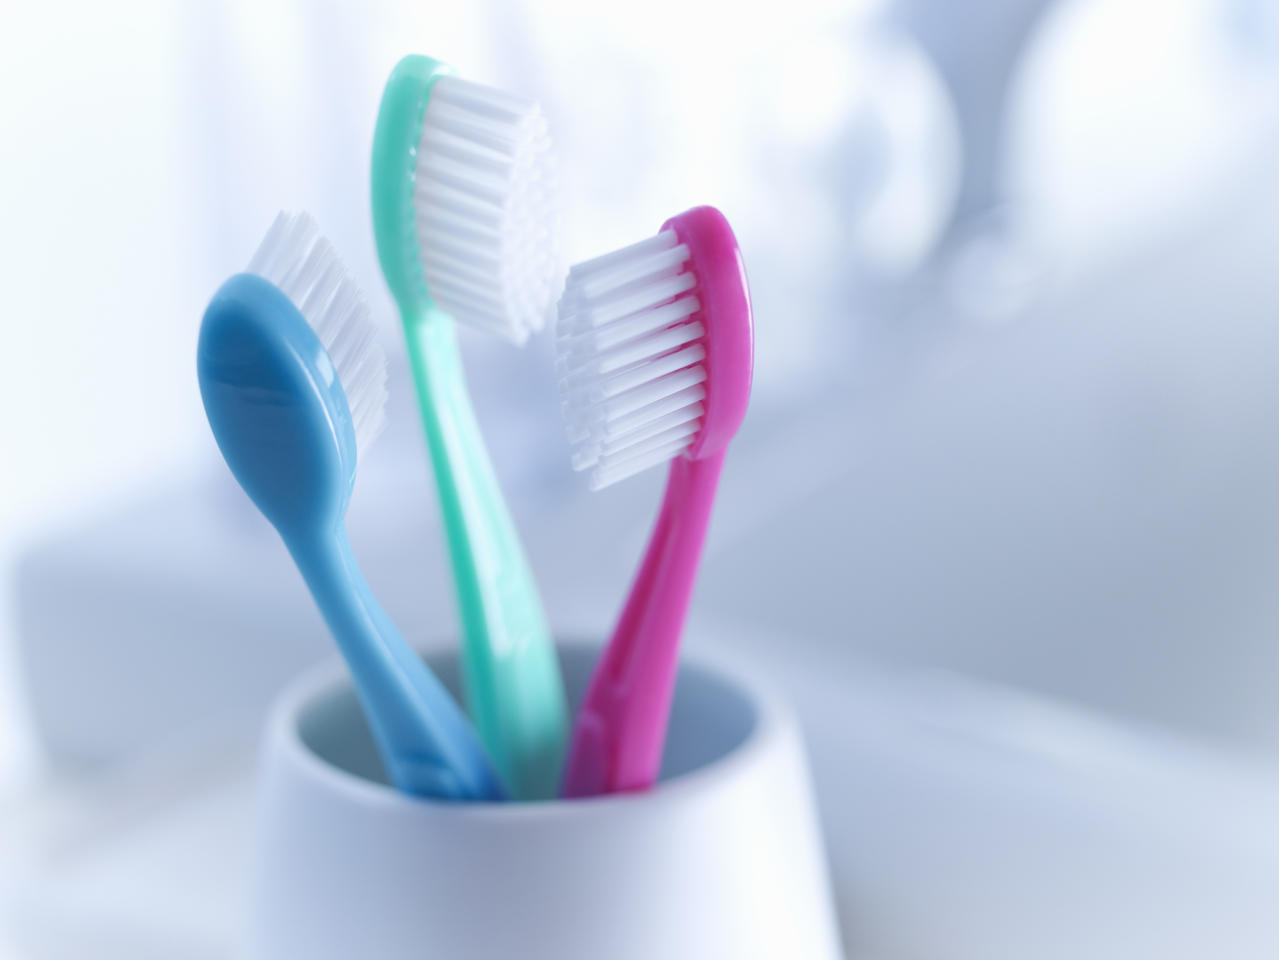 <p>There's no pleasant way to say this: 60 per cent of toothbrushes in a shared bathroom contain fecal matter. Even more disgusting is that there's an 80 per cent probability that it's someone else's fecal matter. Not only is this truly disgusting, it can make you ill. </p>